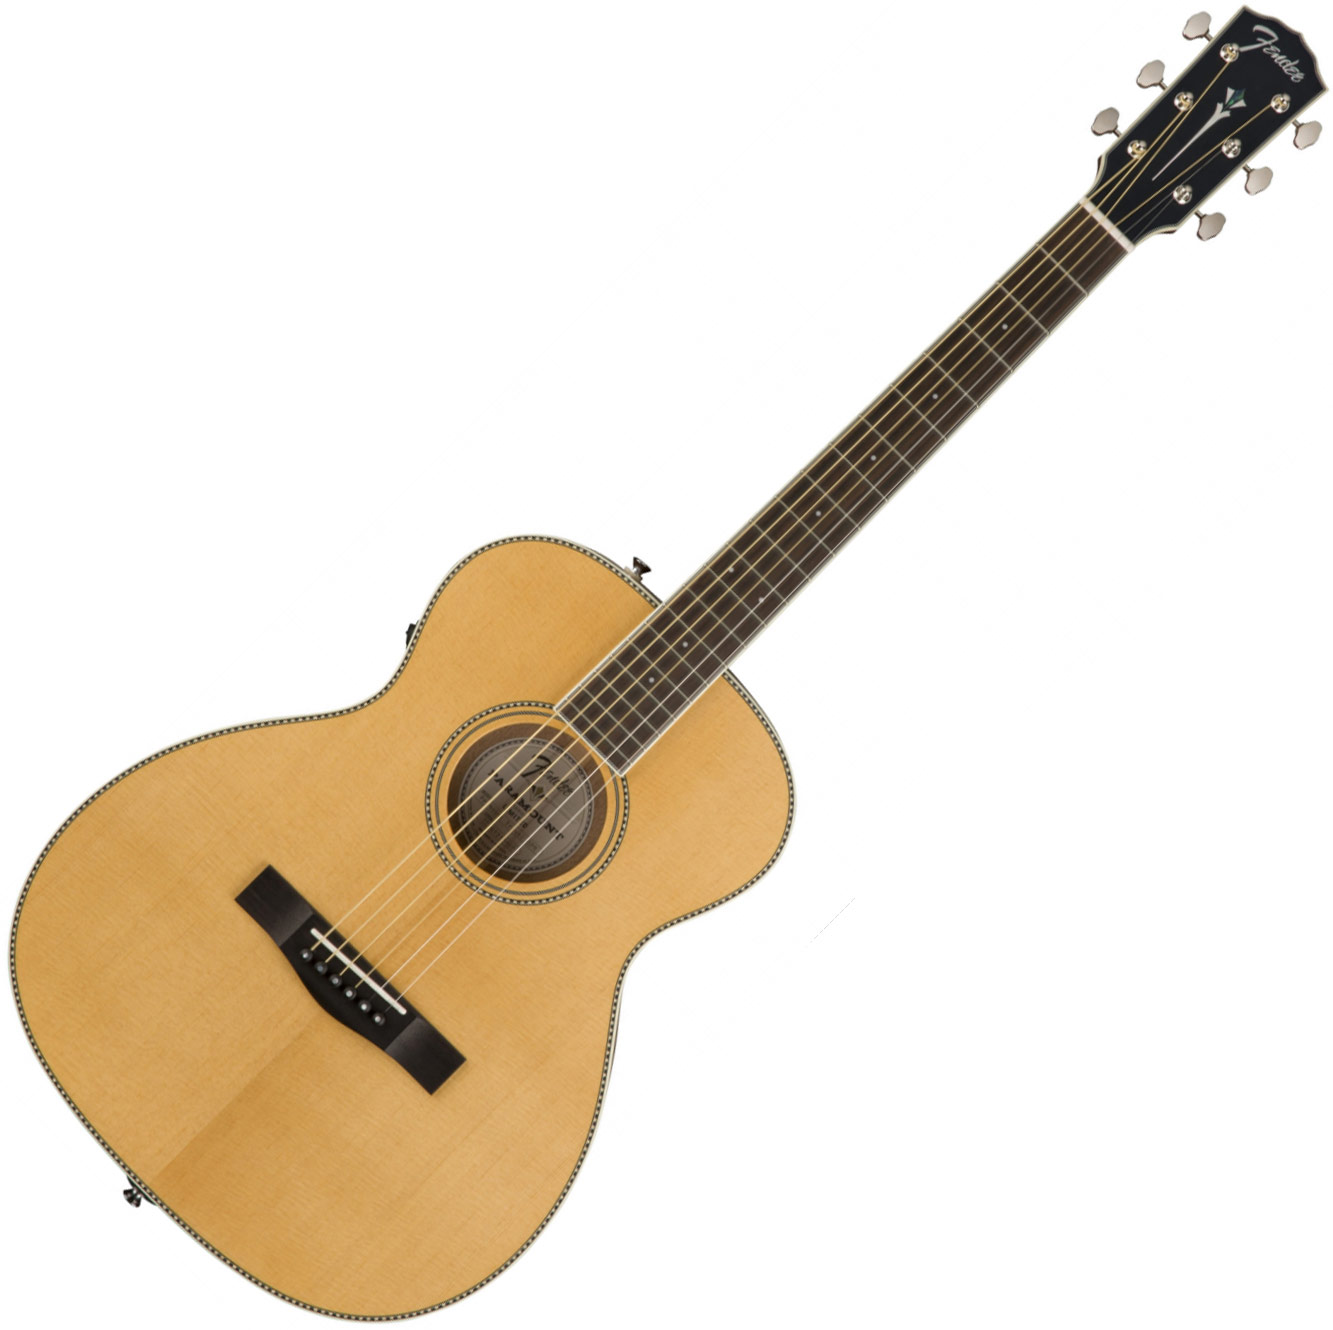 07671a40a97 Fender Paramount PM-TE Standard Travel +case - natural. Travel acoustic  guitar